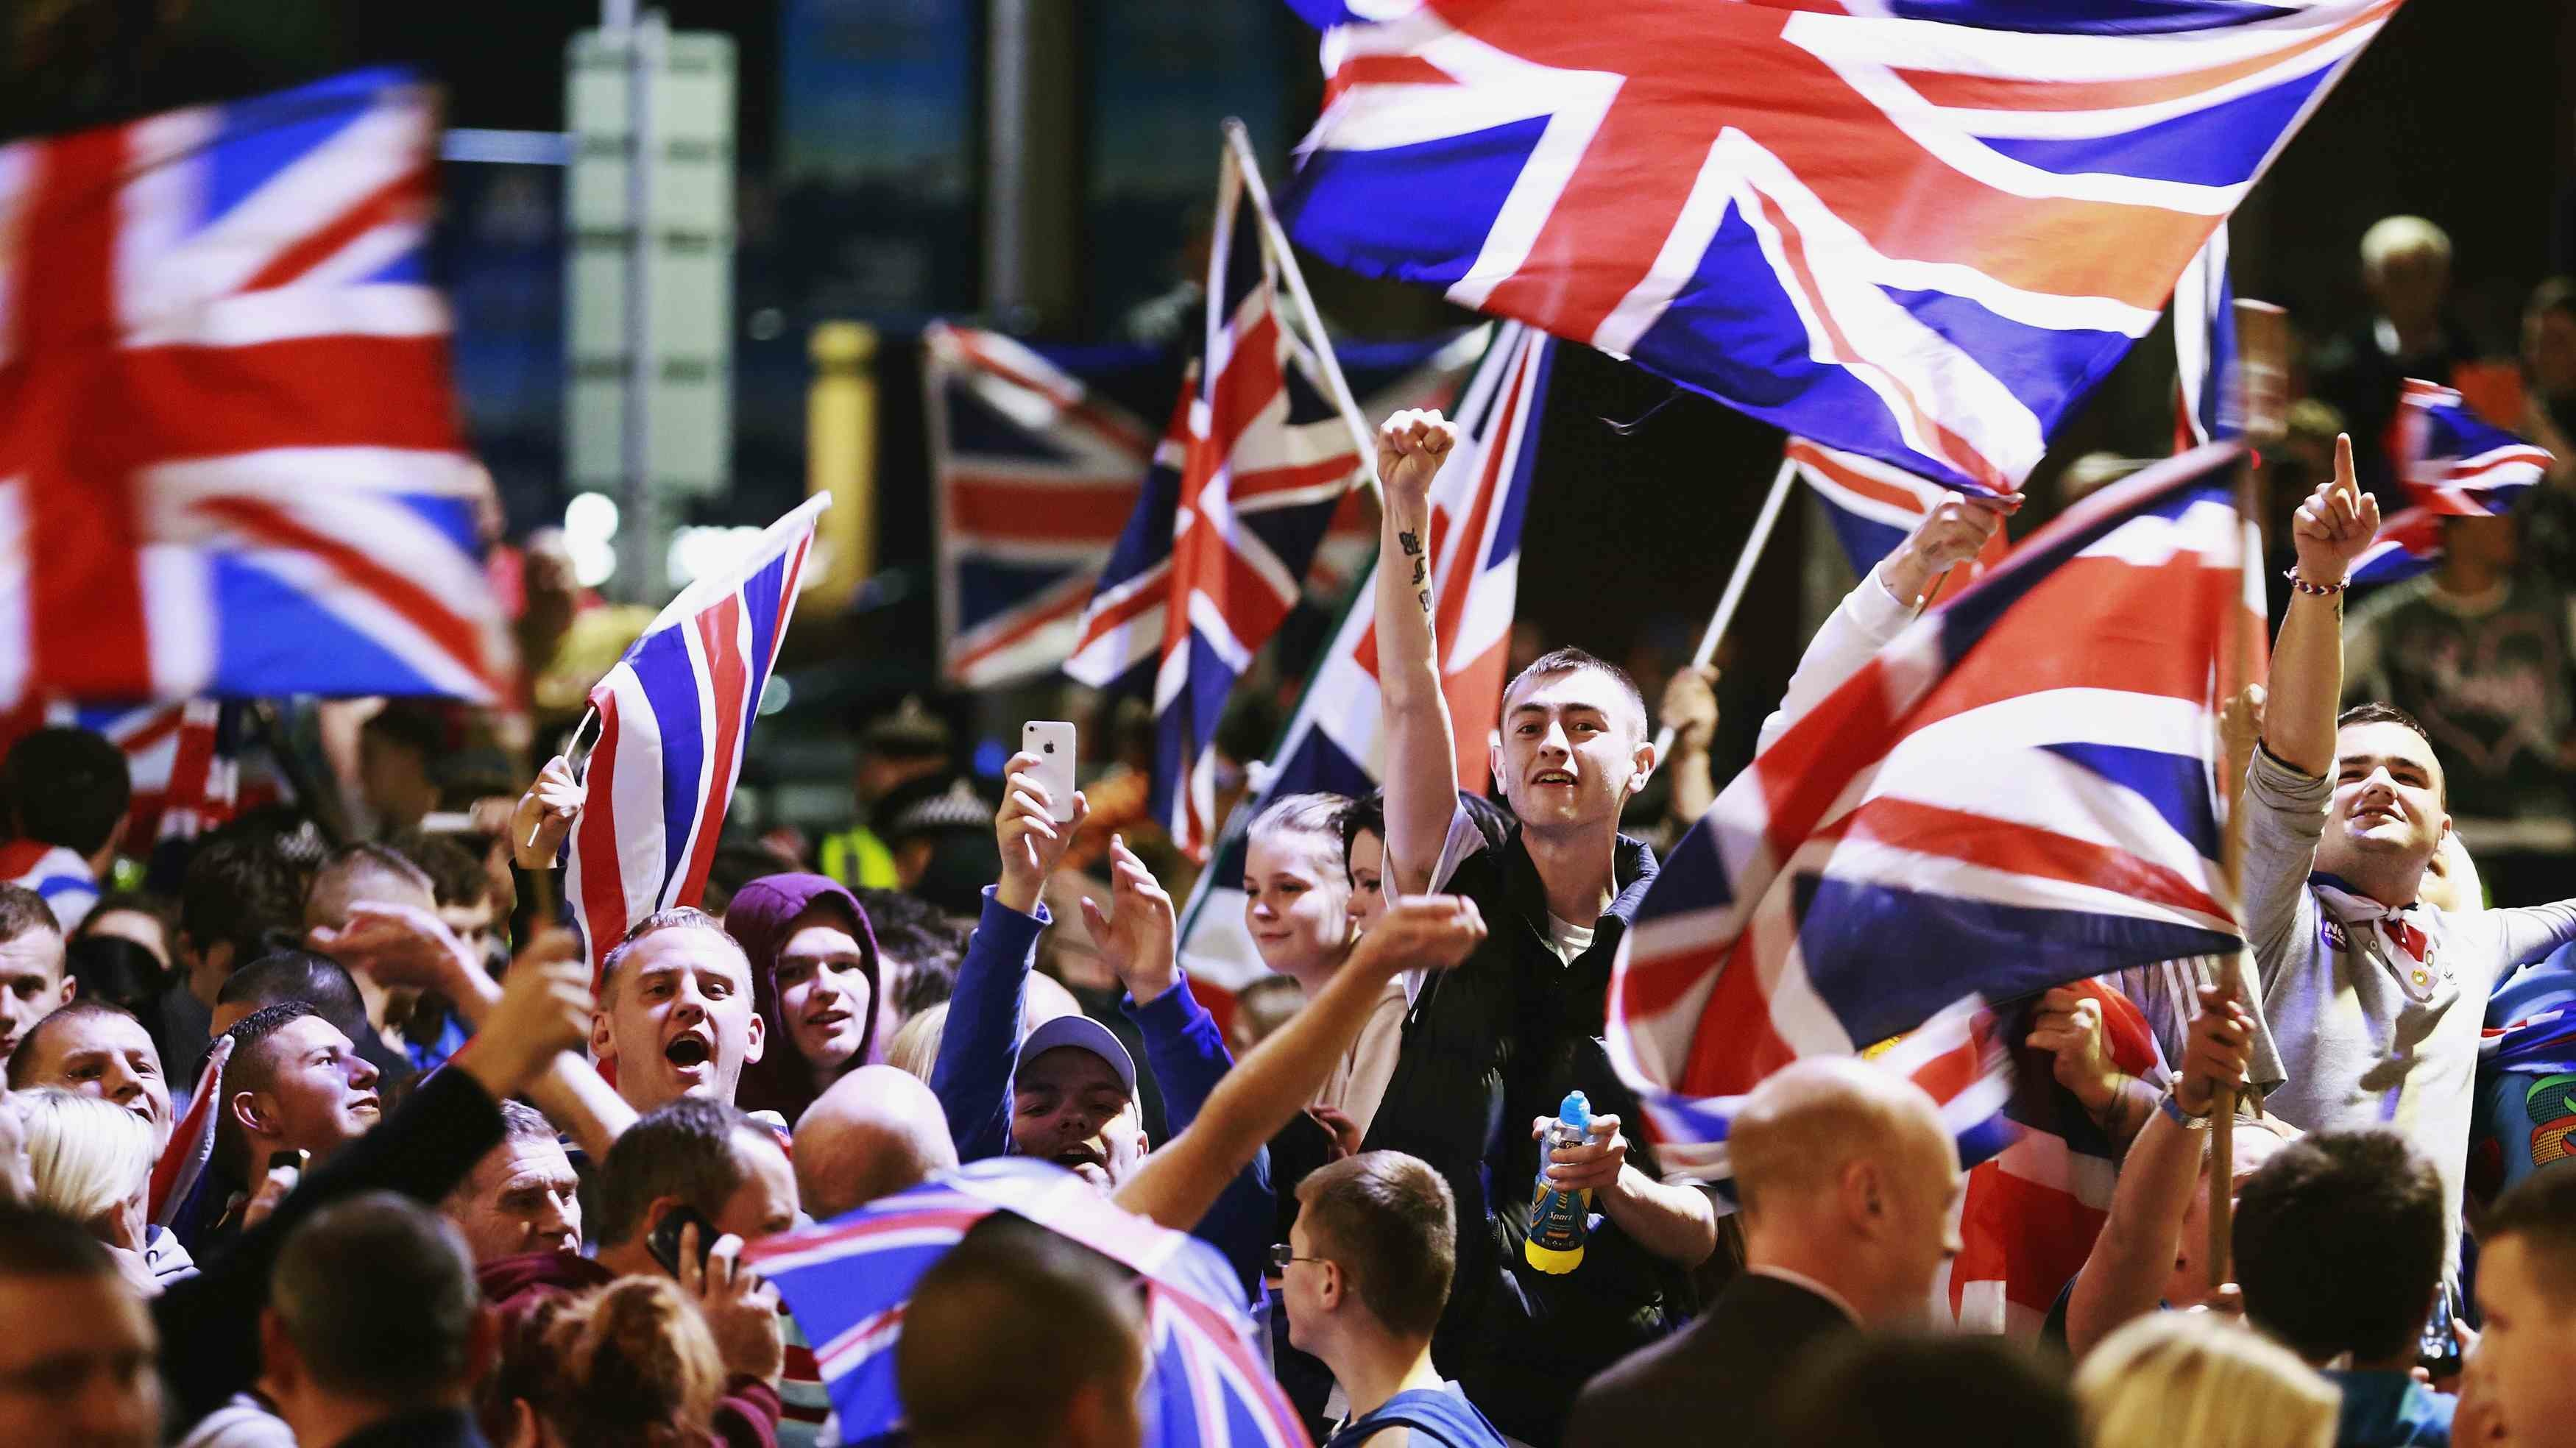 Pro-union protestors chant and wave Union Flags during a demonstration at George Square in Glasgow, Scotland September 19, 2014. Scotland spurned independence in a historic referendum on Thursday, saving a union dating back over 300 years but ushering in a period of intense bargaining over Britain's Prime Minister David Cameron's pre-vote pledges to give Scots more say over their own affairs. REUTERS/Cathal McNaughton (BRITAIN - Tags: POLITICS ELECTIONS CIVIL UNREST TPX IMAGES OF THE DAY) - RTR46Z8U